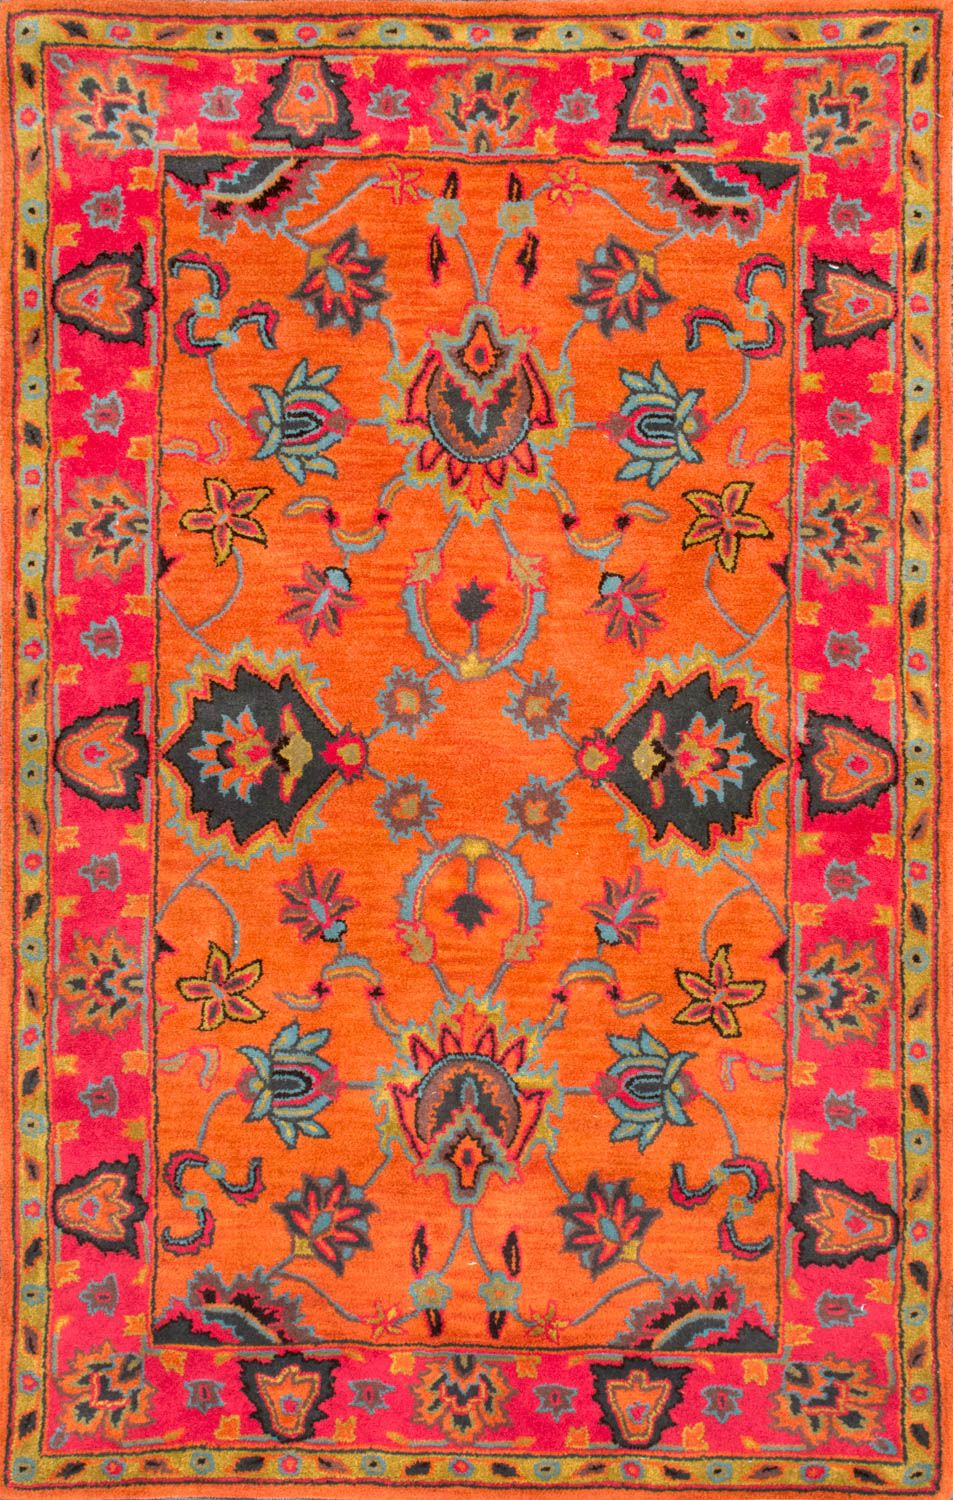 http://www.rugsusa.com/rugsusa/rugs/rugs-usa-re21/orange/200SPRE21A ...